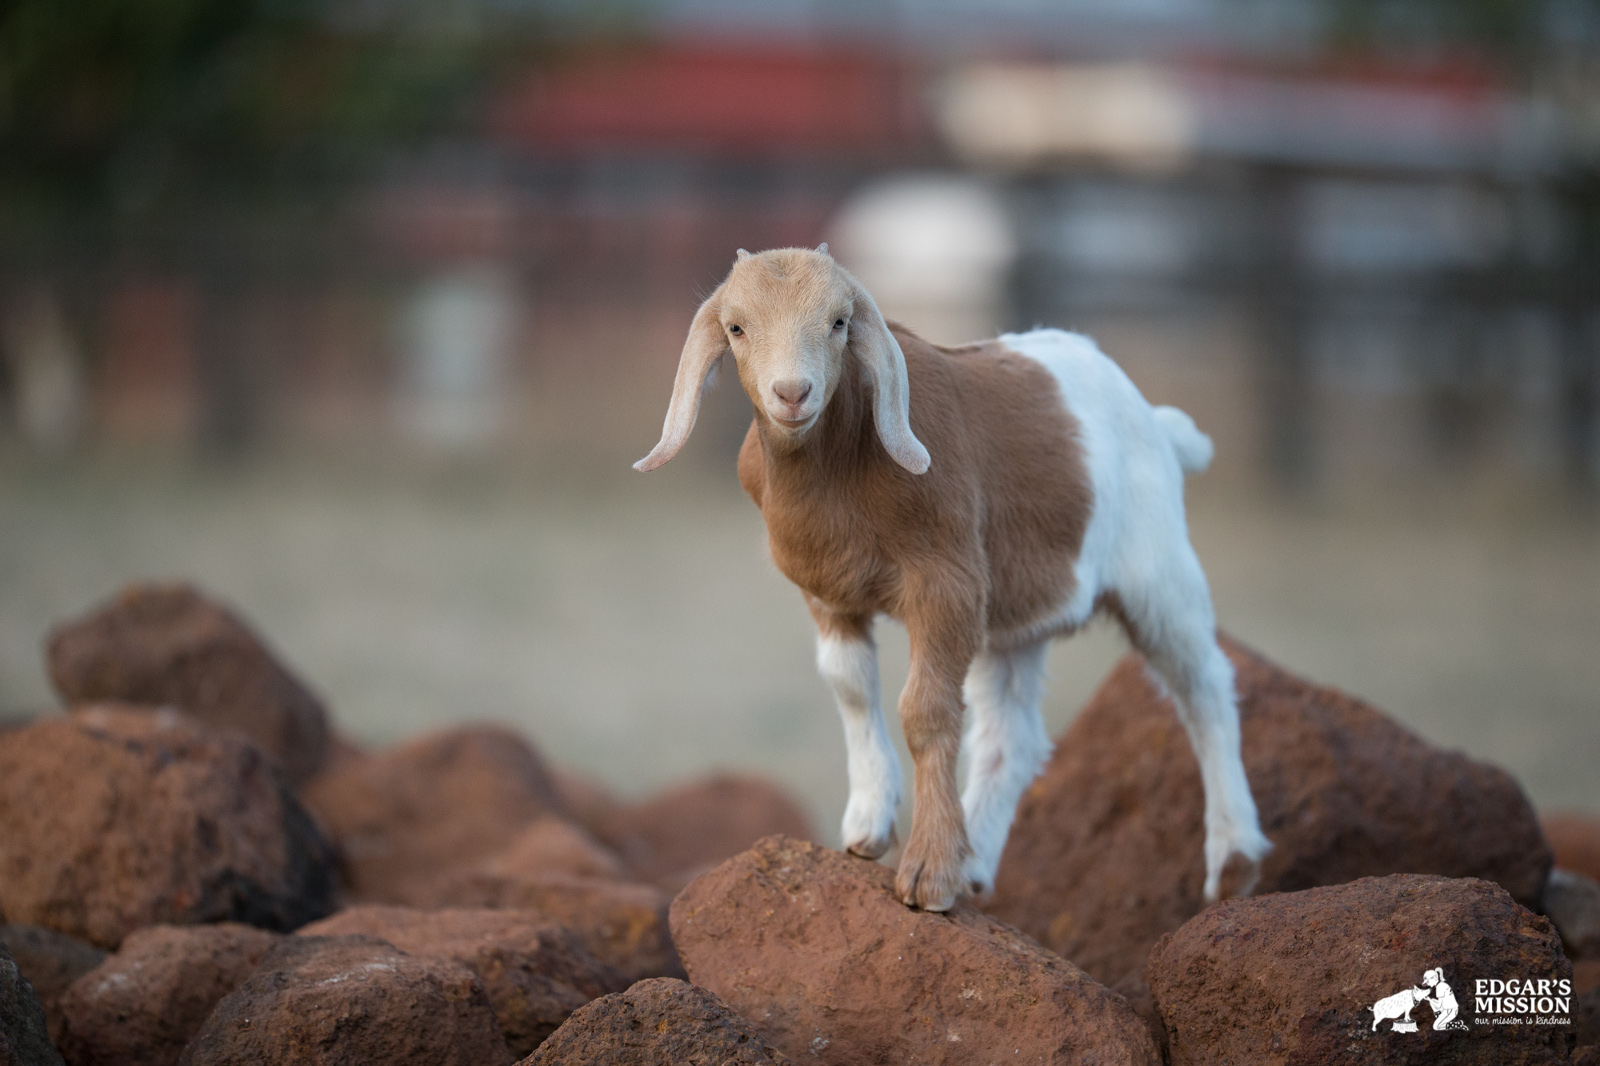 Chrissy the Small Goat on a Mission to Make a Big Impact on the Way We Perceive Farm Animals